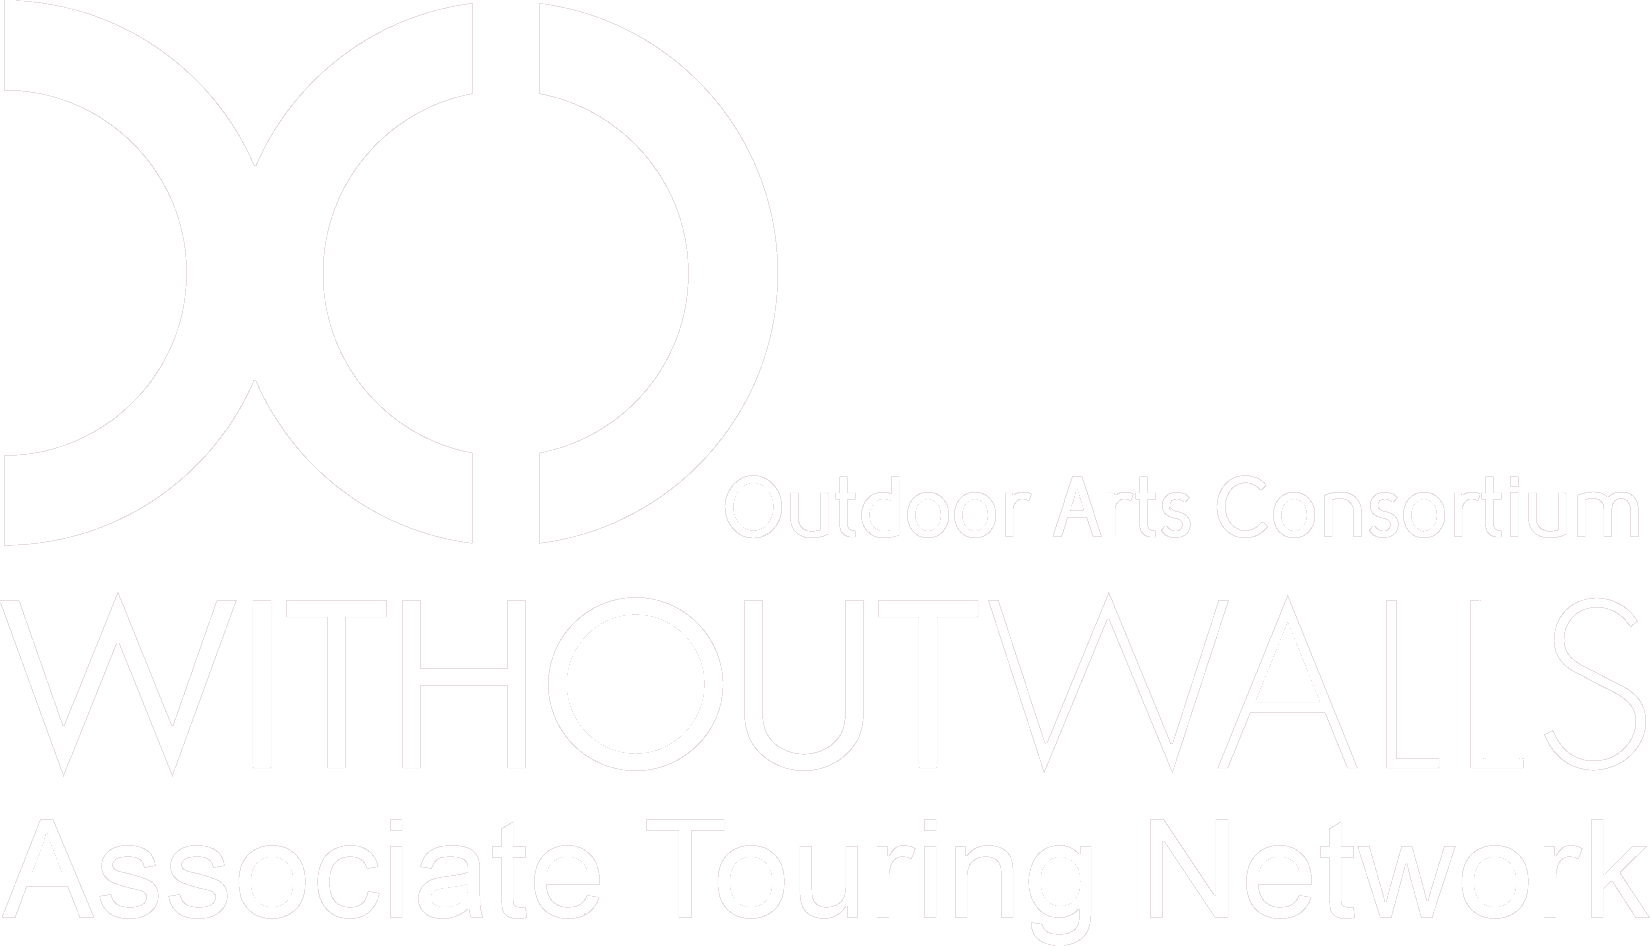 Without Walls Associate Touring Network is a group of festivals working together to extend the reach and benefits of the existing Without Walls programme in areas where there is low engagement with the arts, bringing high-quality outdoor work to diverse audiences across England.